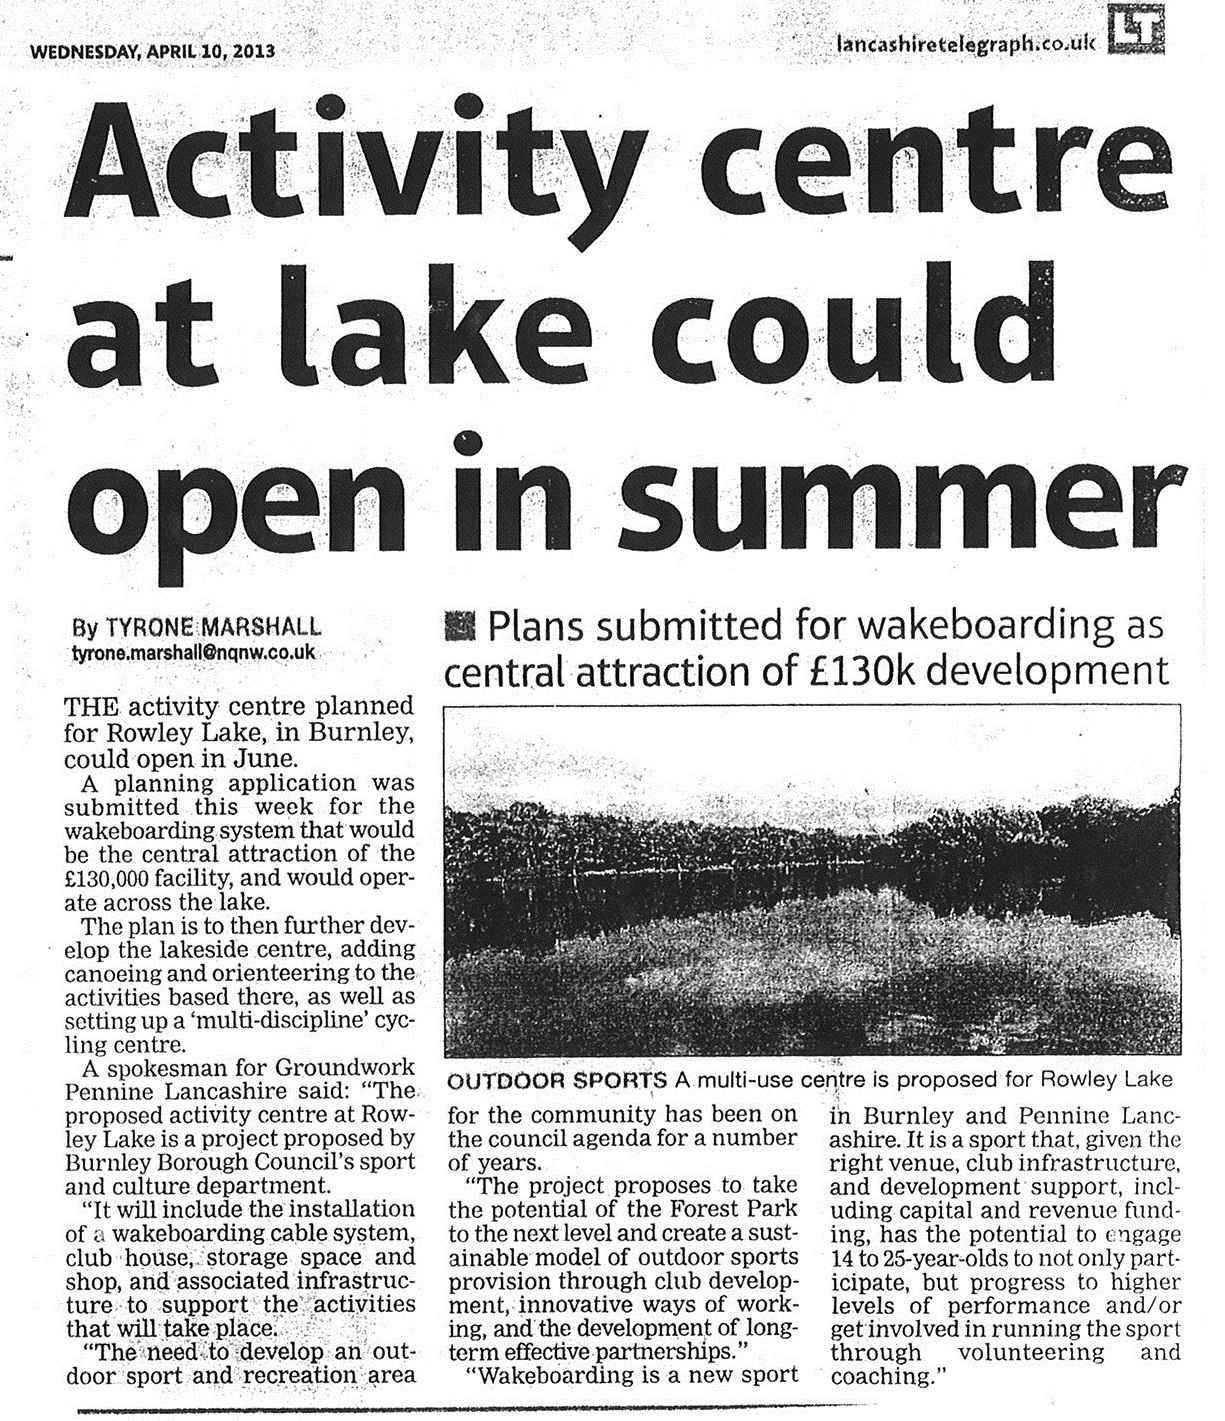 2013 April 10 Activity centre at lake could open in summer.jpg